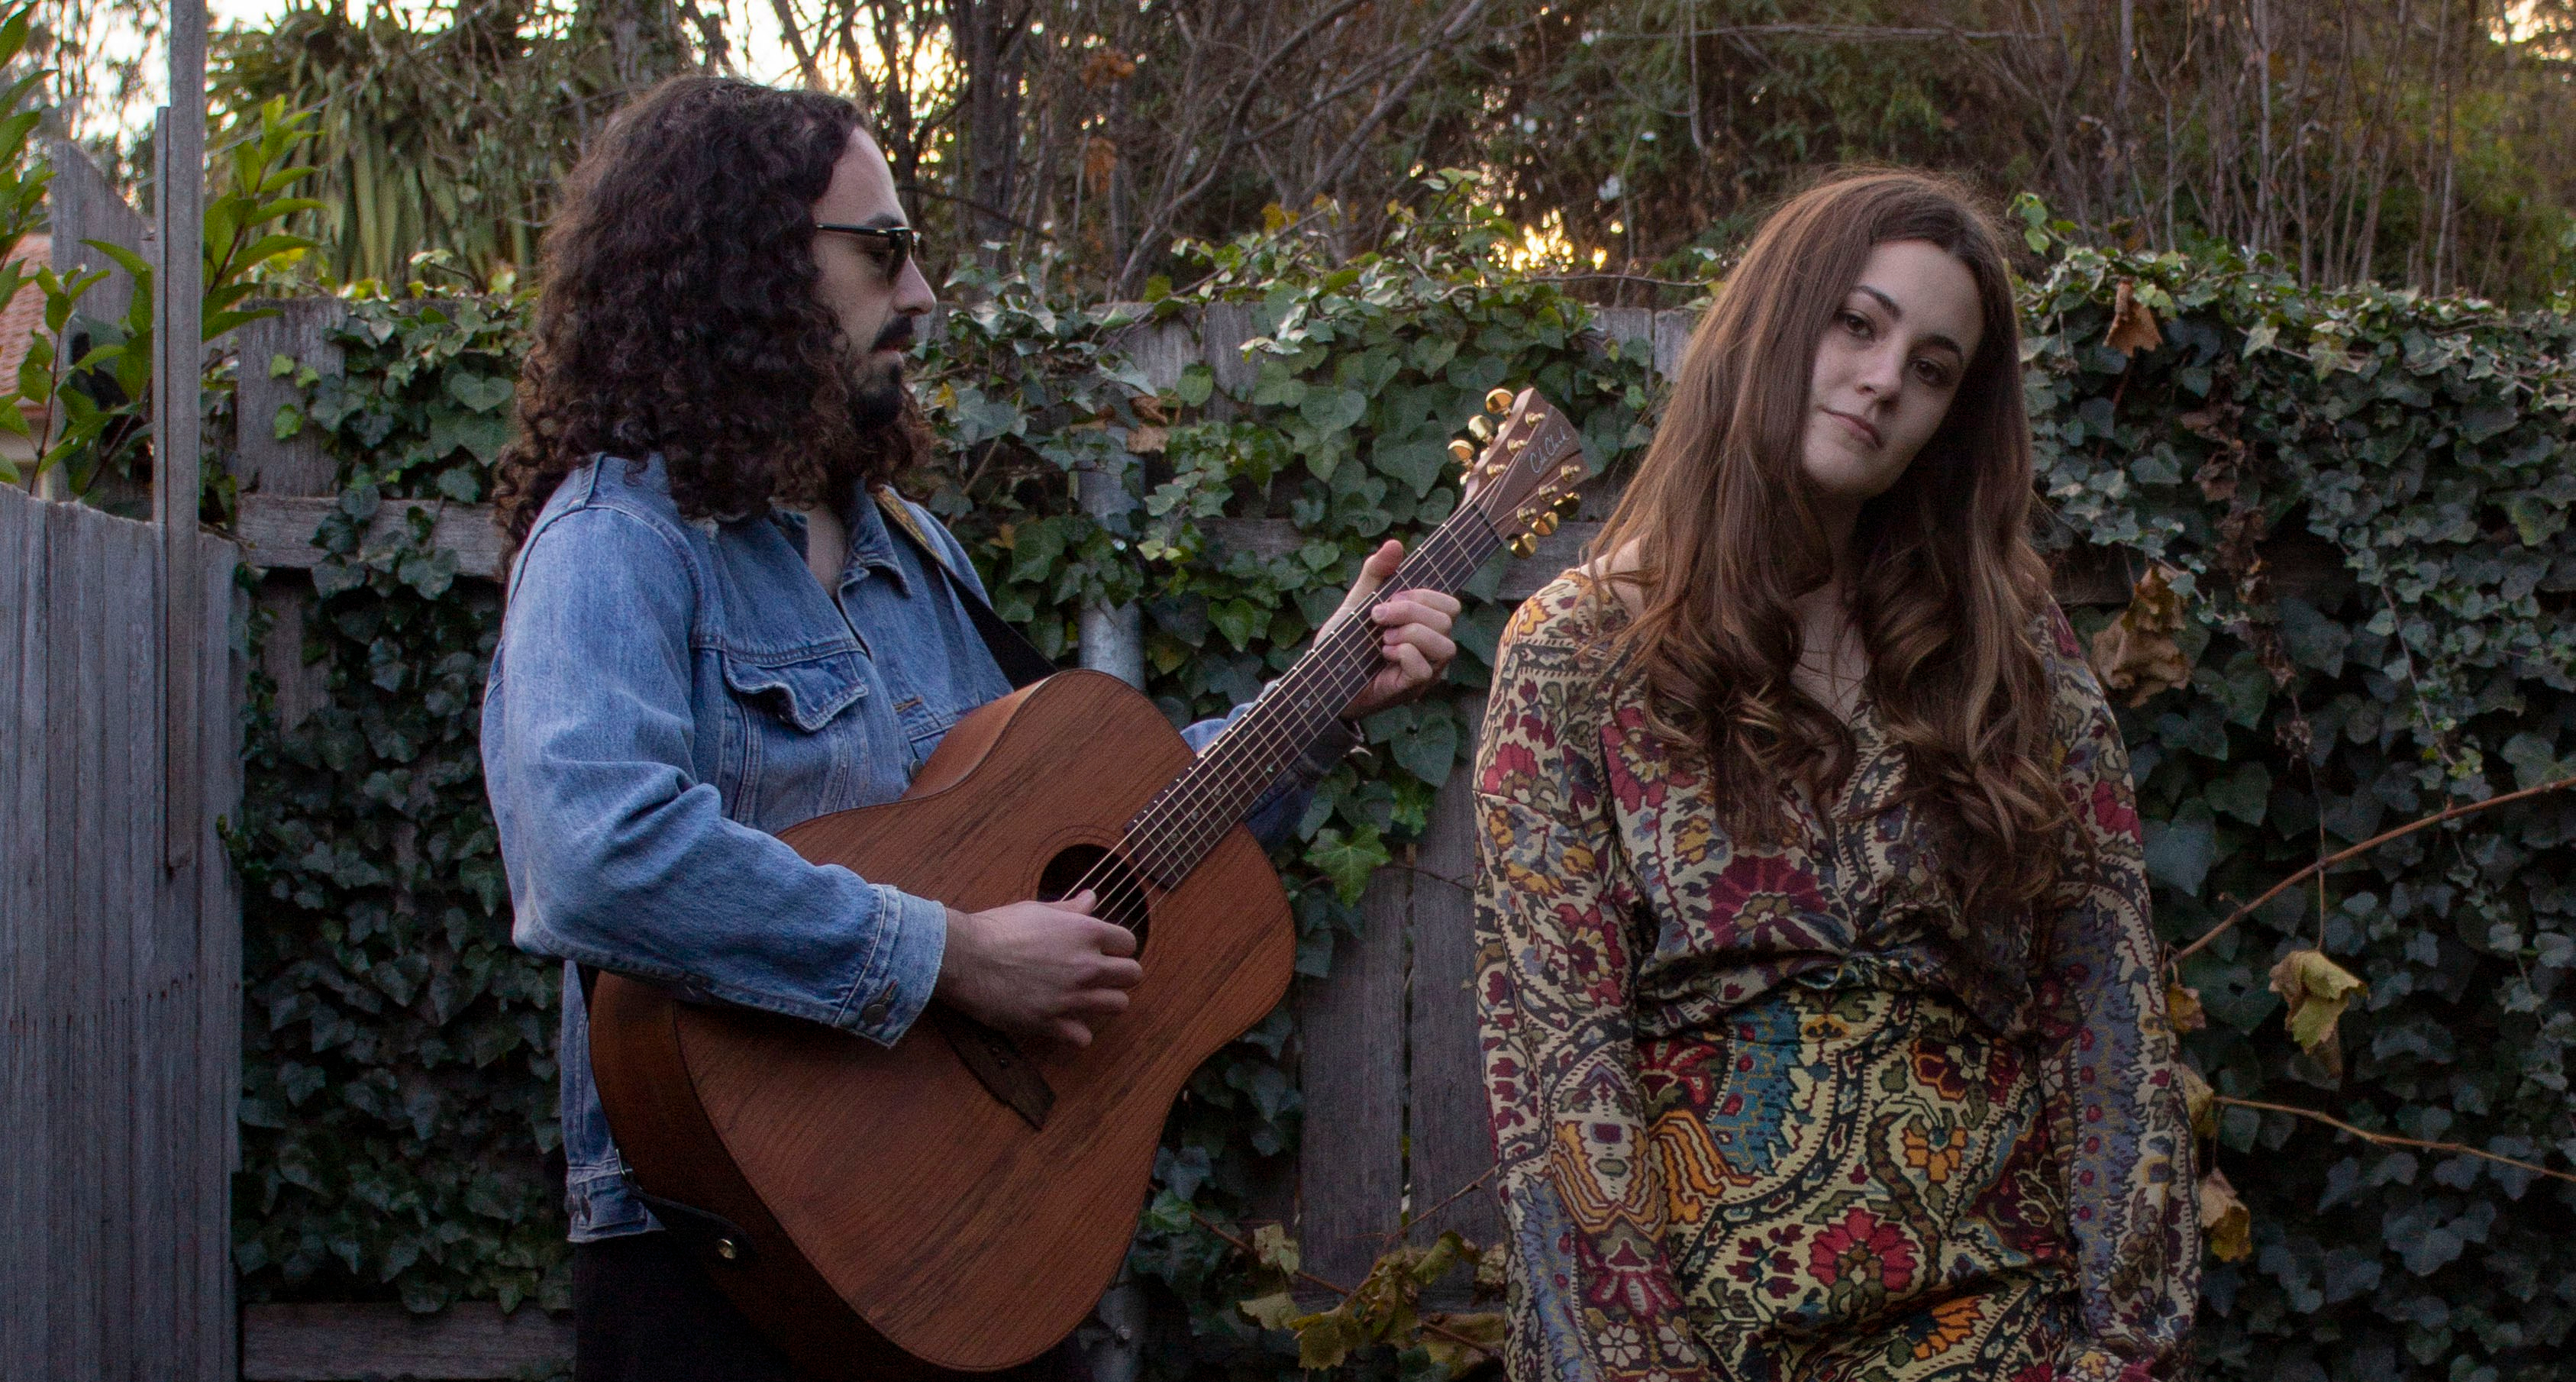 Canberra duo Skinny Wolf's debut track 'Fever' is an intriguing blend of folk-blues roots and indie dream pop that is both quiet and bewitching